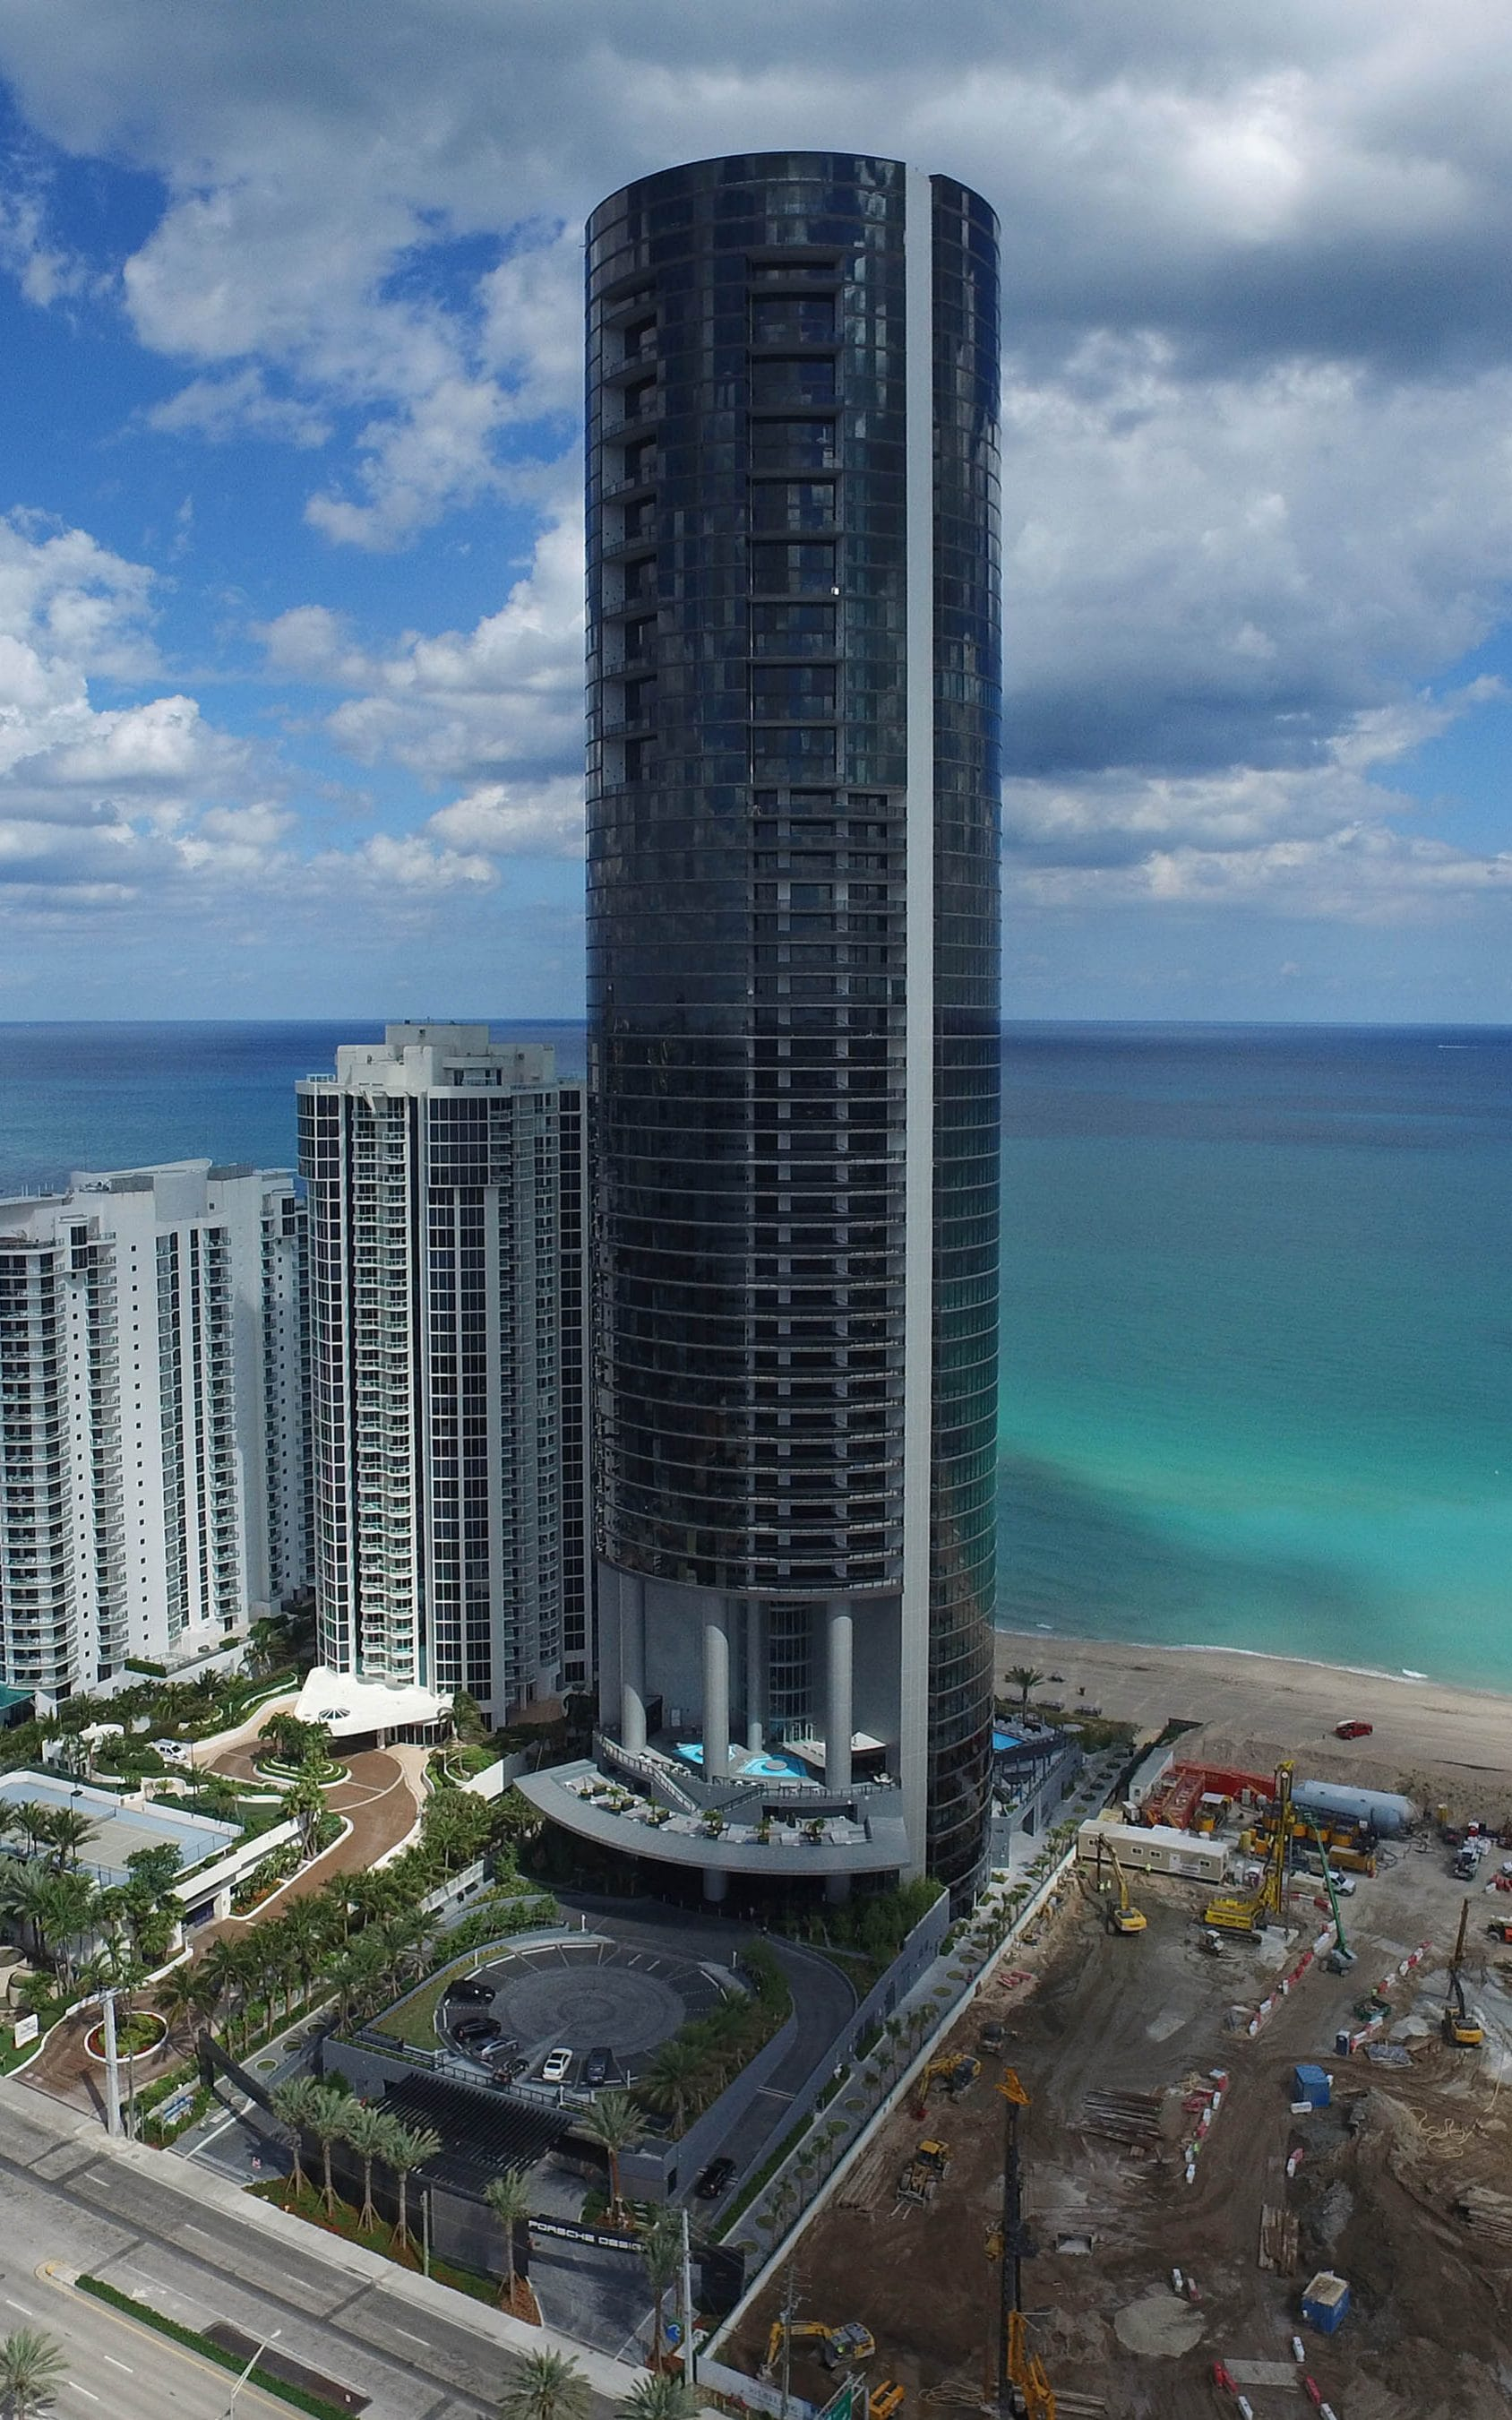 The Dezervator Drivein lift enables residents of Miami tower to turn their cars into works